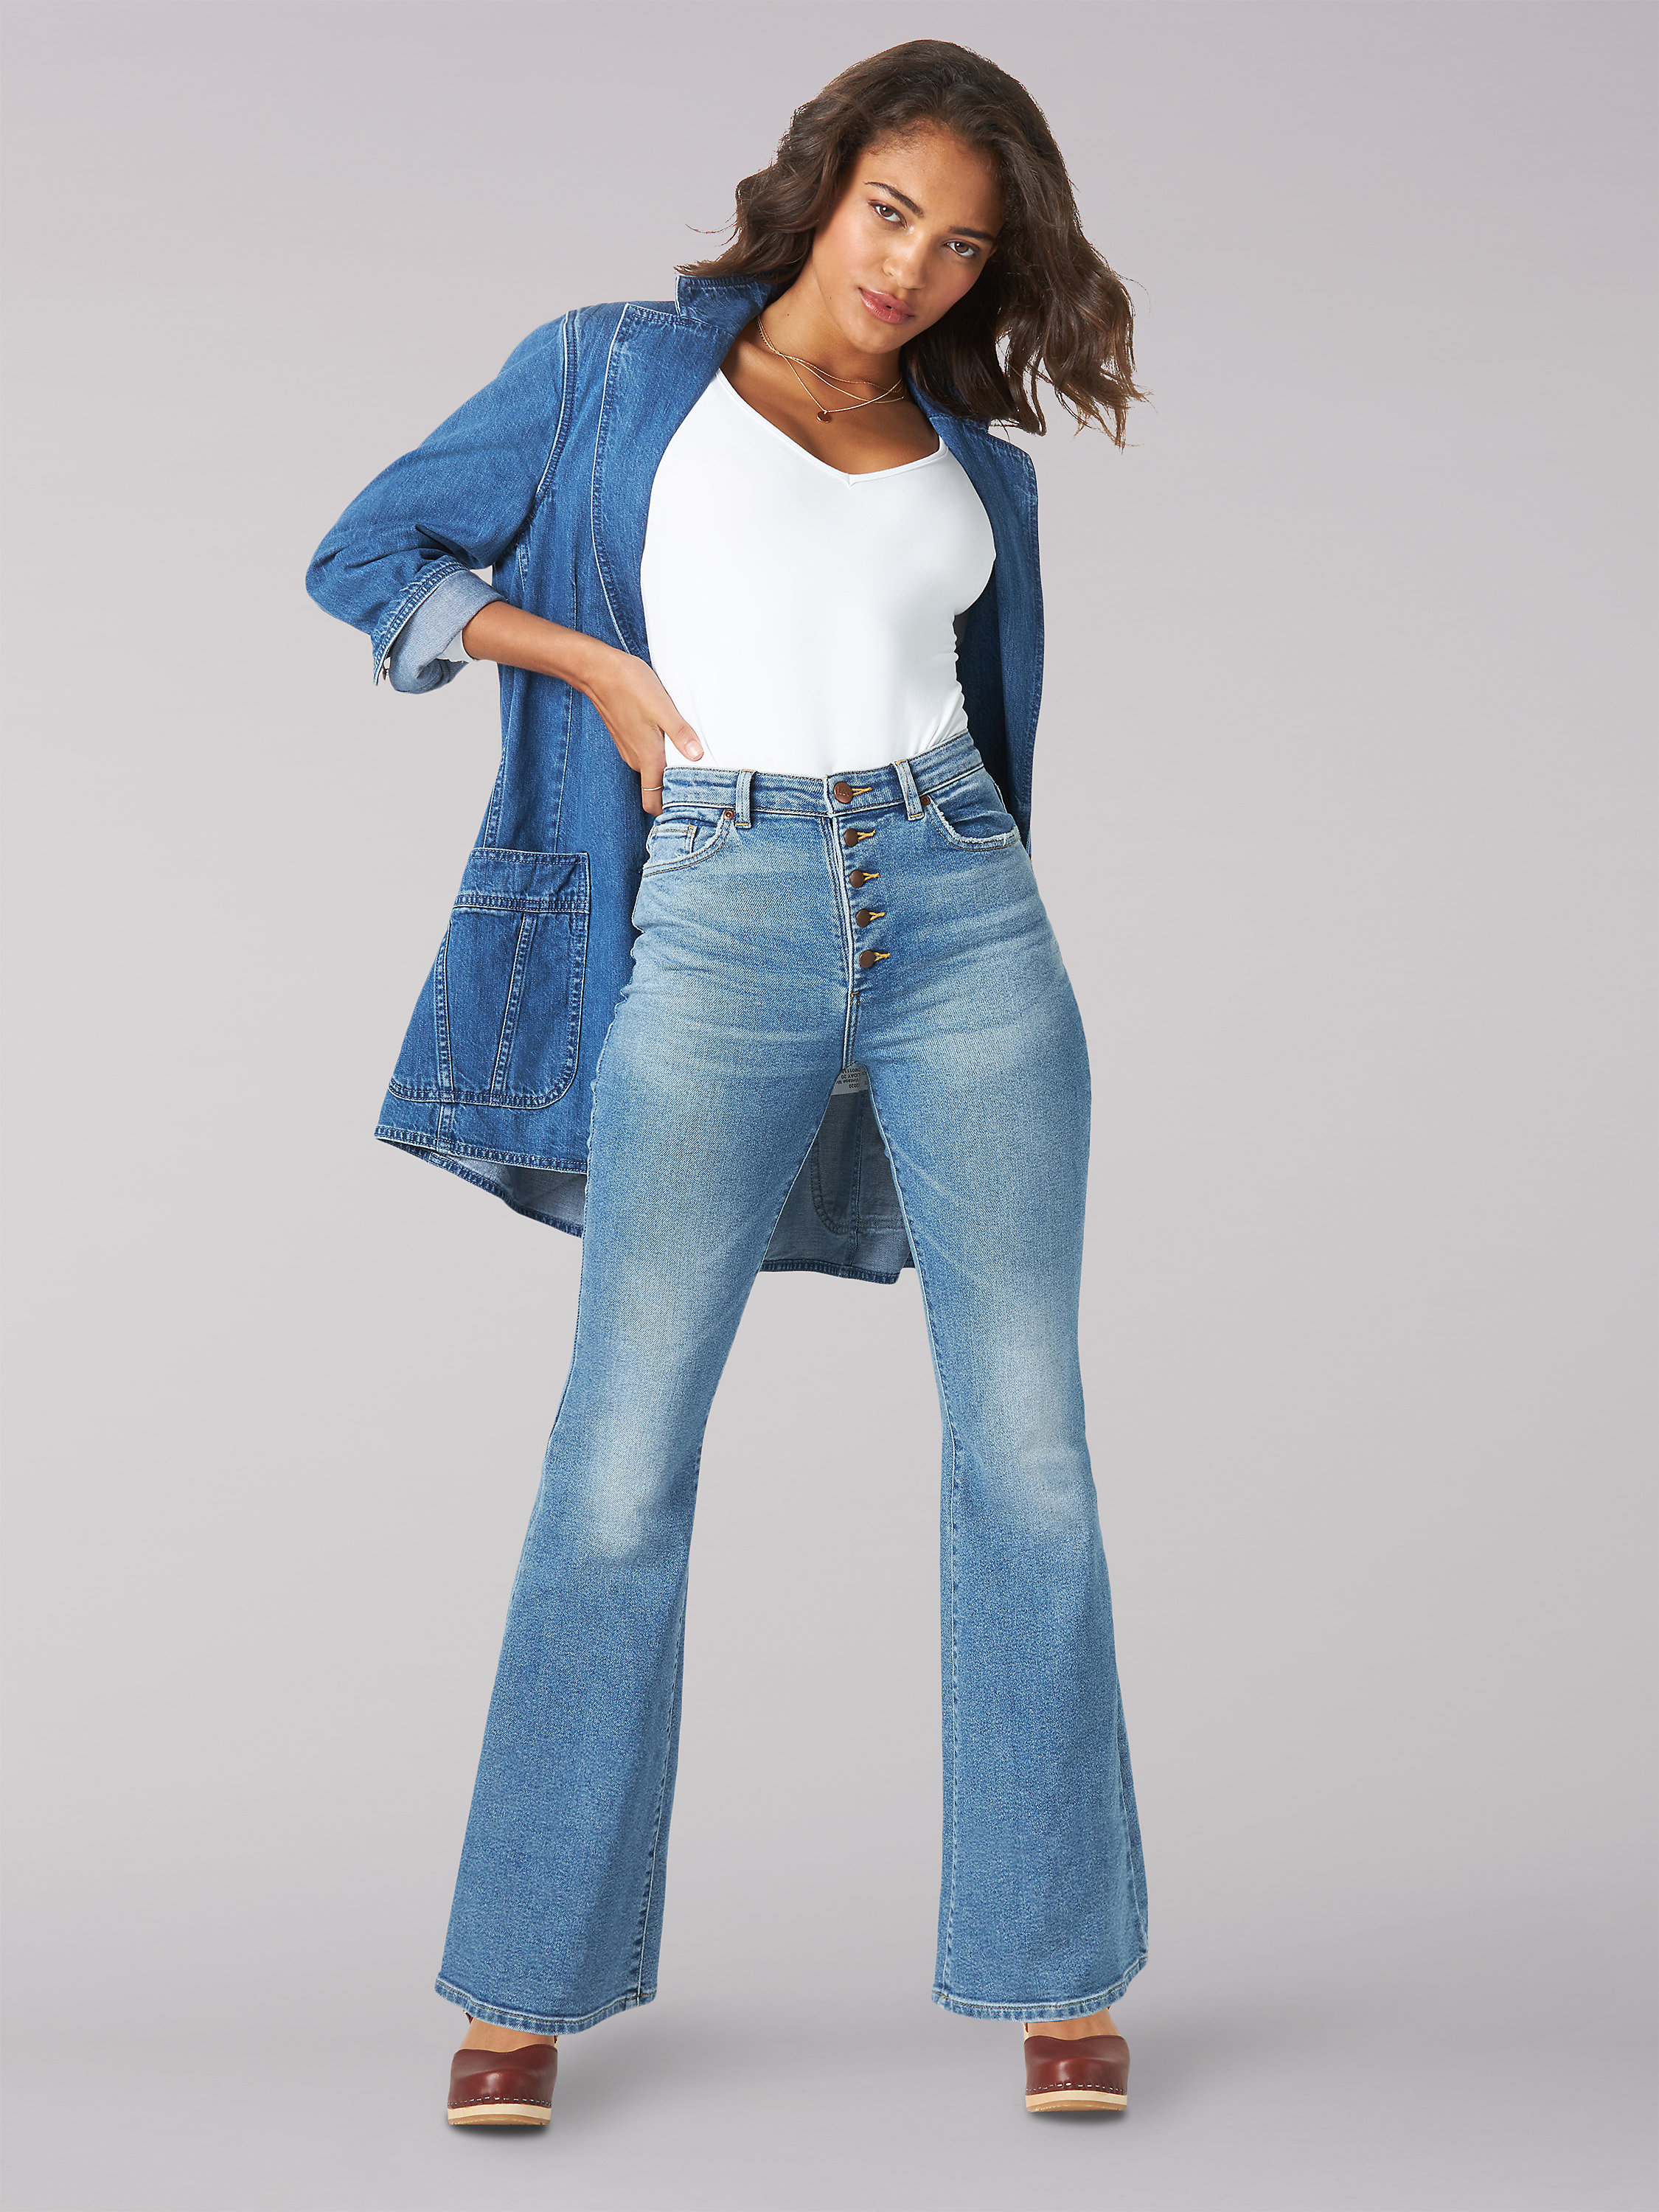 WOMEN'S VINTAGE MODERN HIGH RISE BUTTON-FLY FLARE JEAN